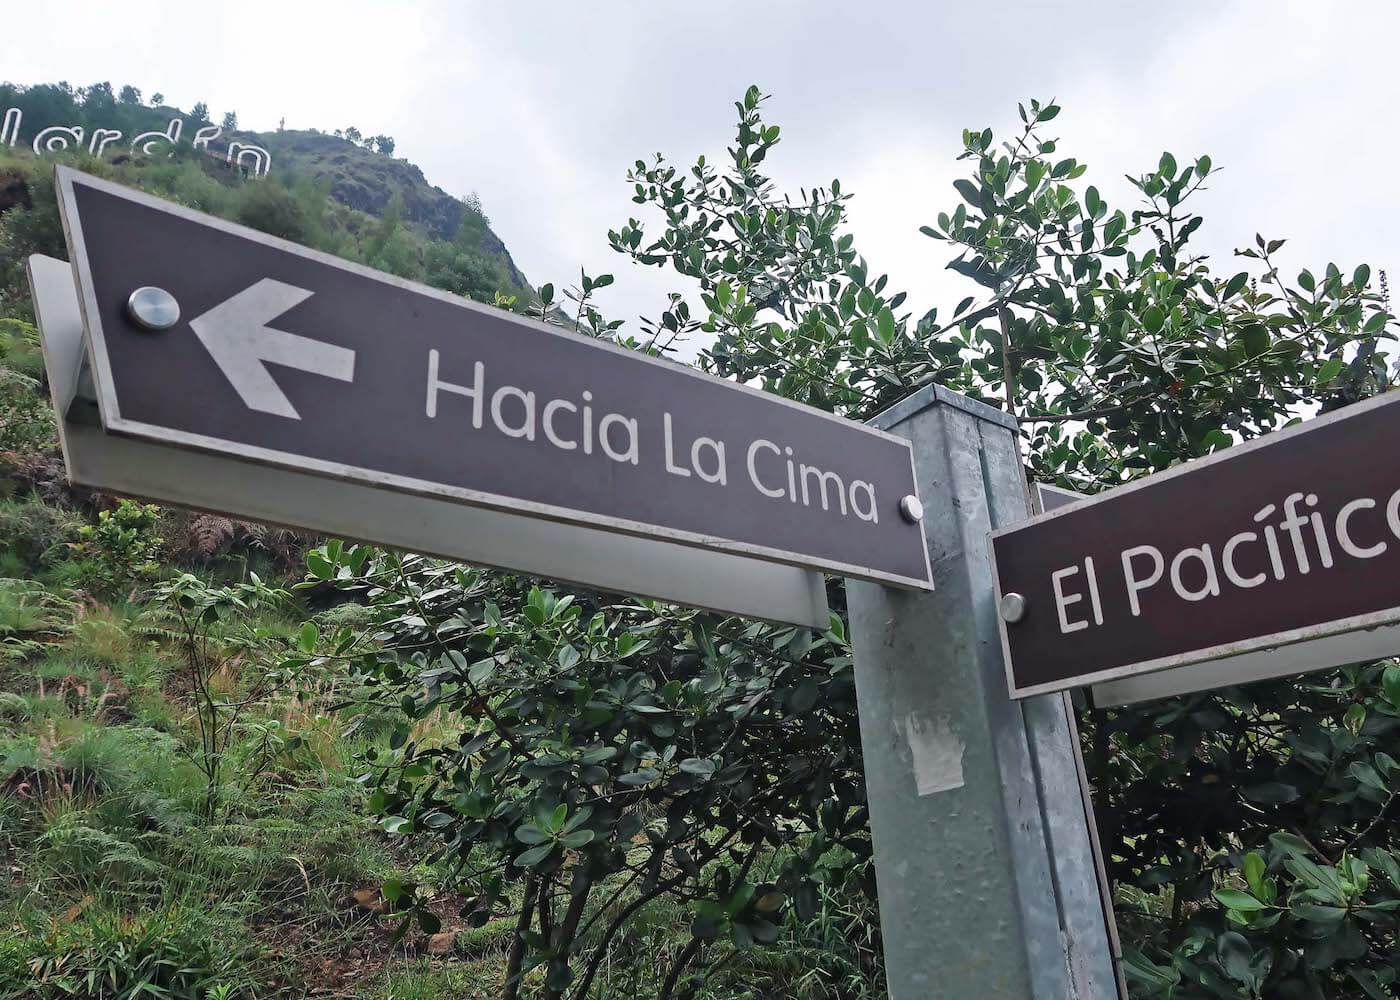 Sign saying Hacia la Cima pointing to top of Pan de Azucar